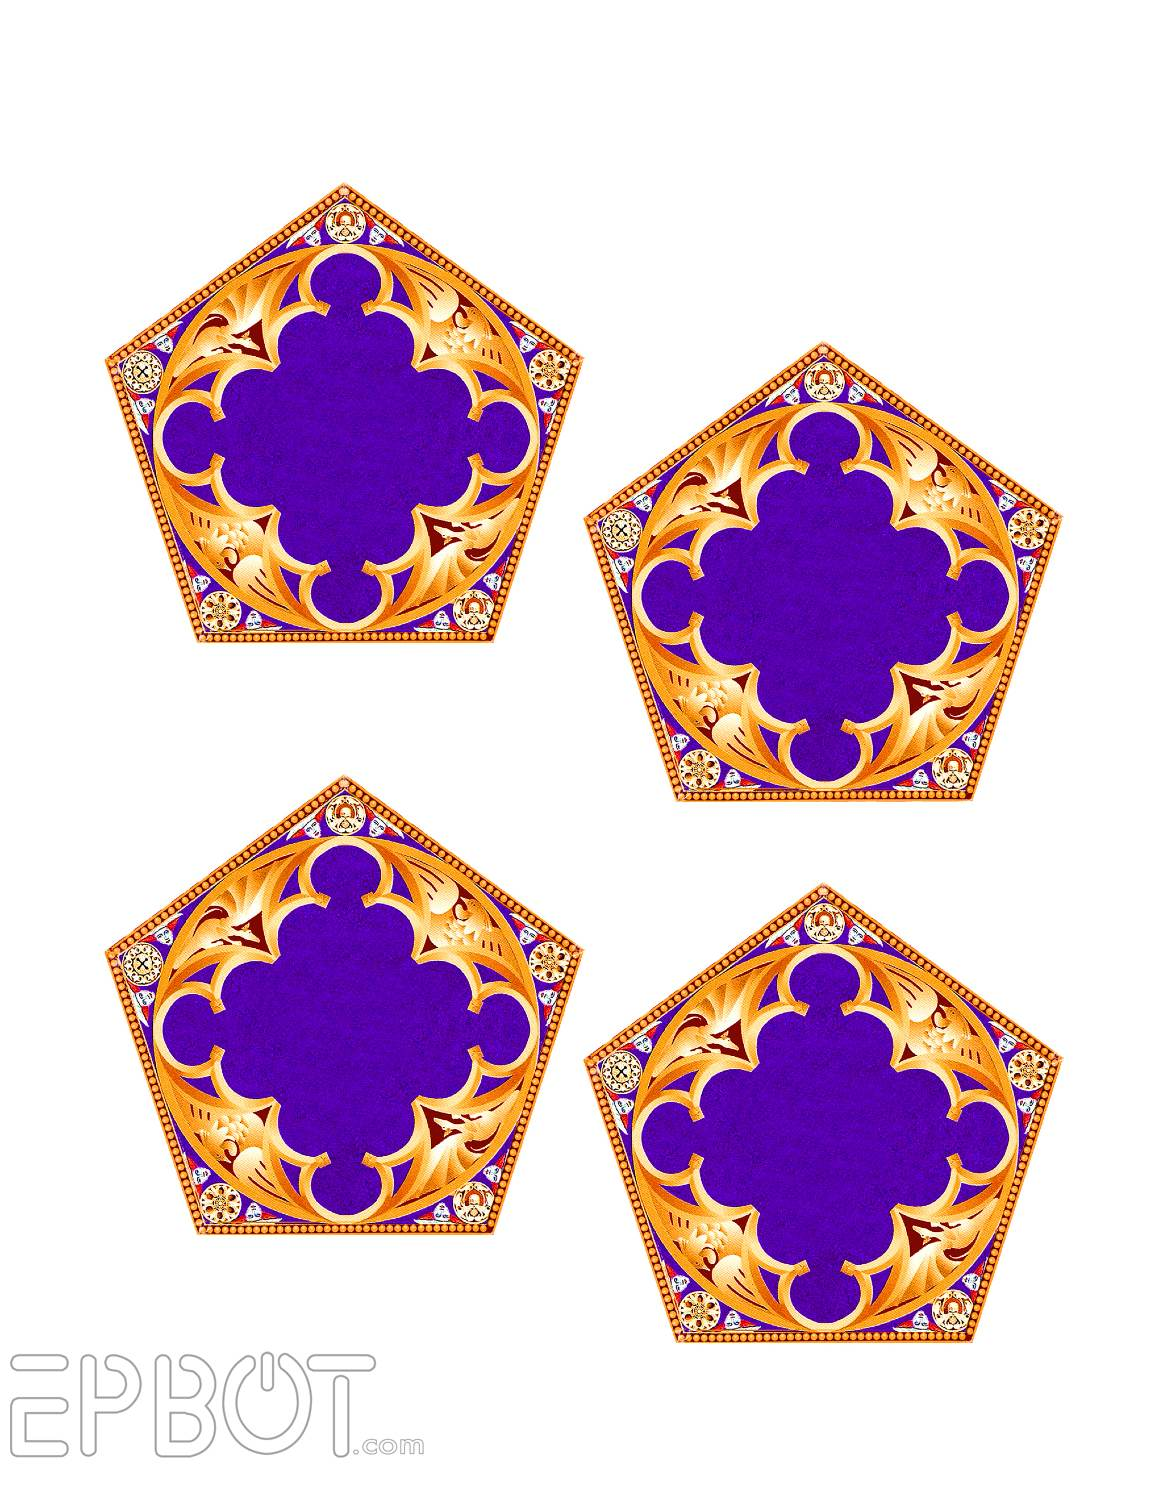 photograph relating to Printable Chocolate Frog Cards named EPBOT: Do-it-yourself Chocolate Frog Ornaments For Your Tree!